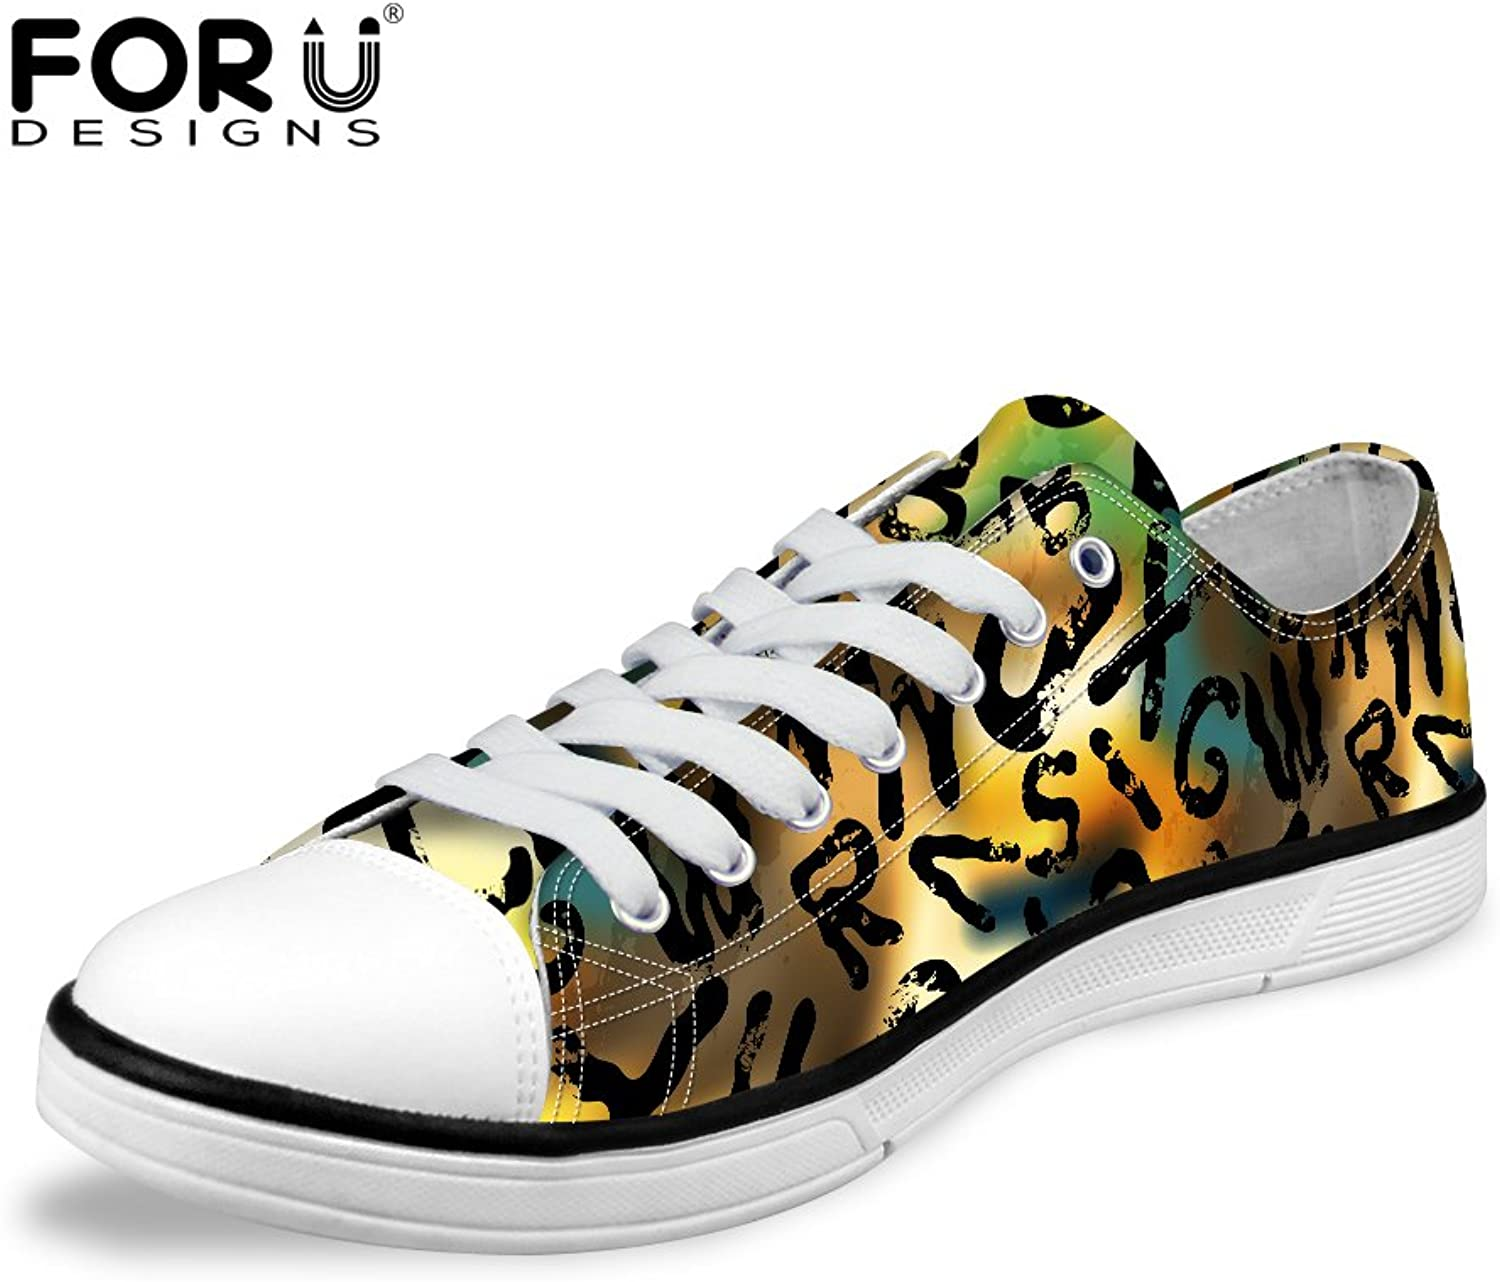 FOR U DESIGNS Brown Graffiti Women Lo-Top Comfortable Lace-Up Light Weight Canvas Sneaker US 8